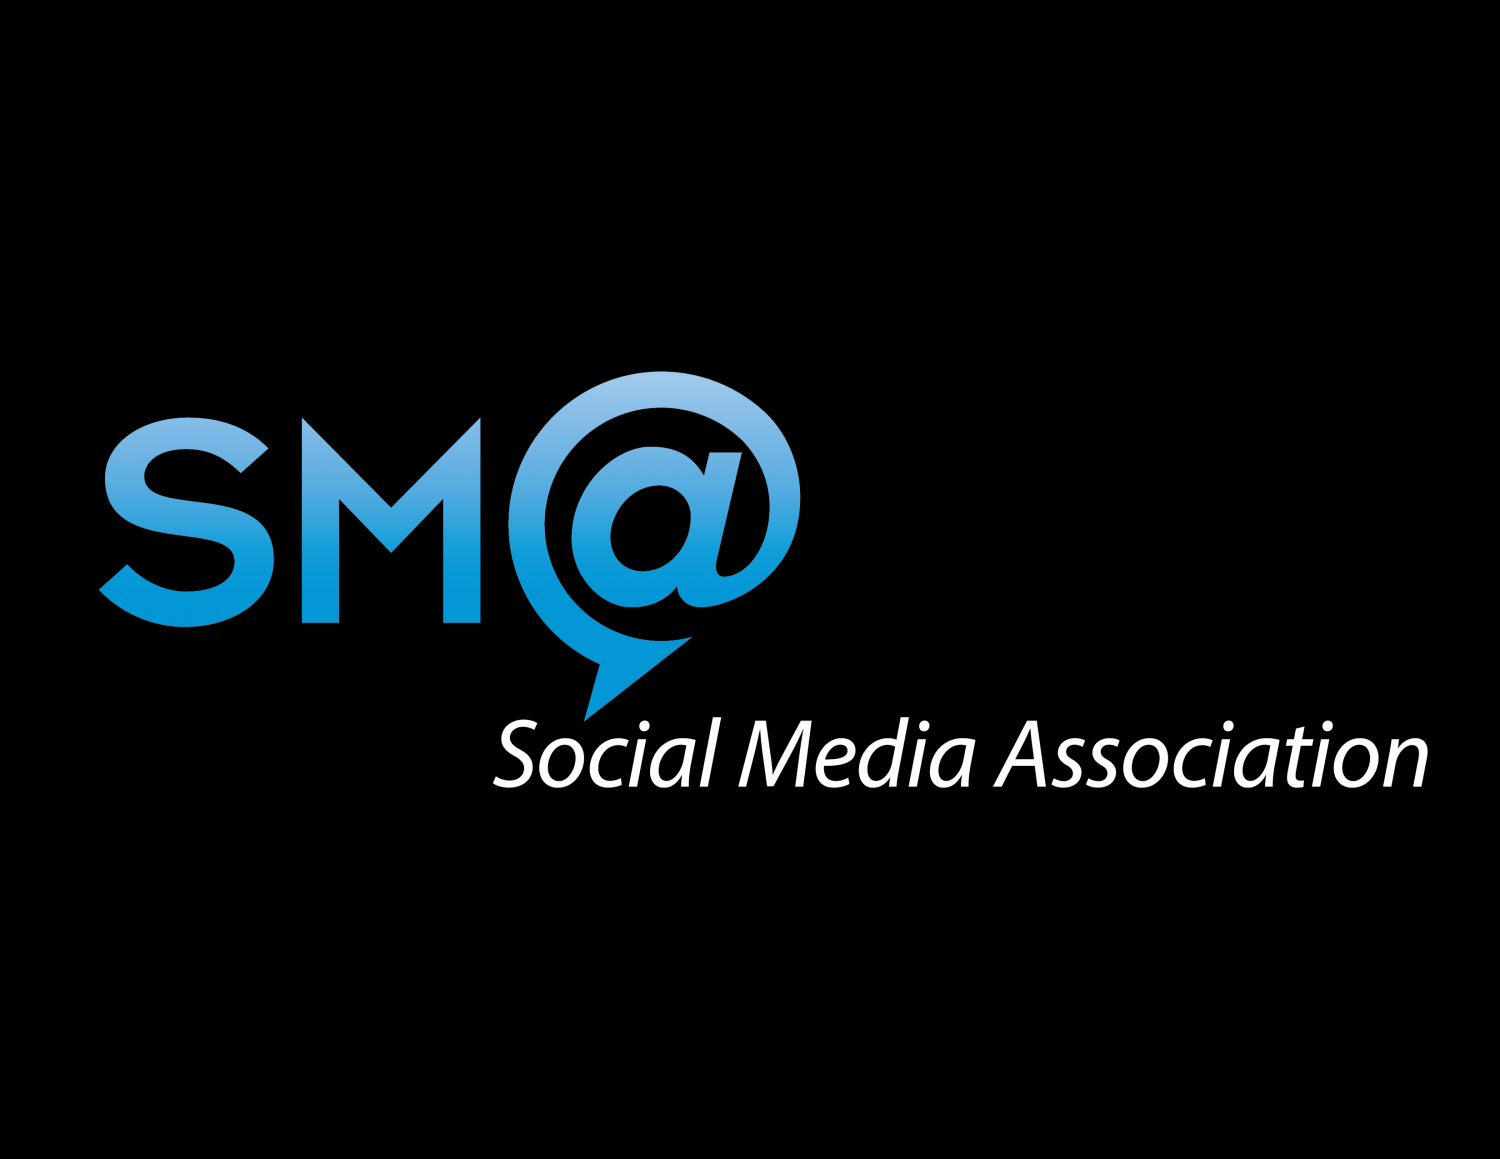 good logo design, logo designer, long island logo design, sma logo, social media association, social media branding